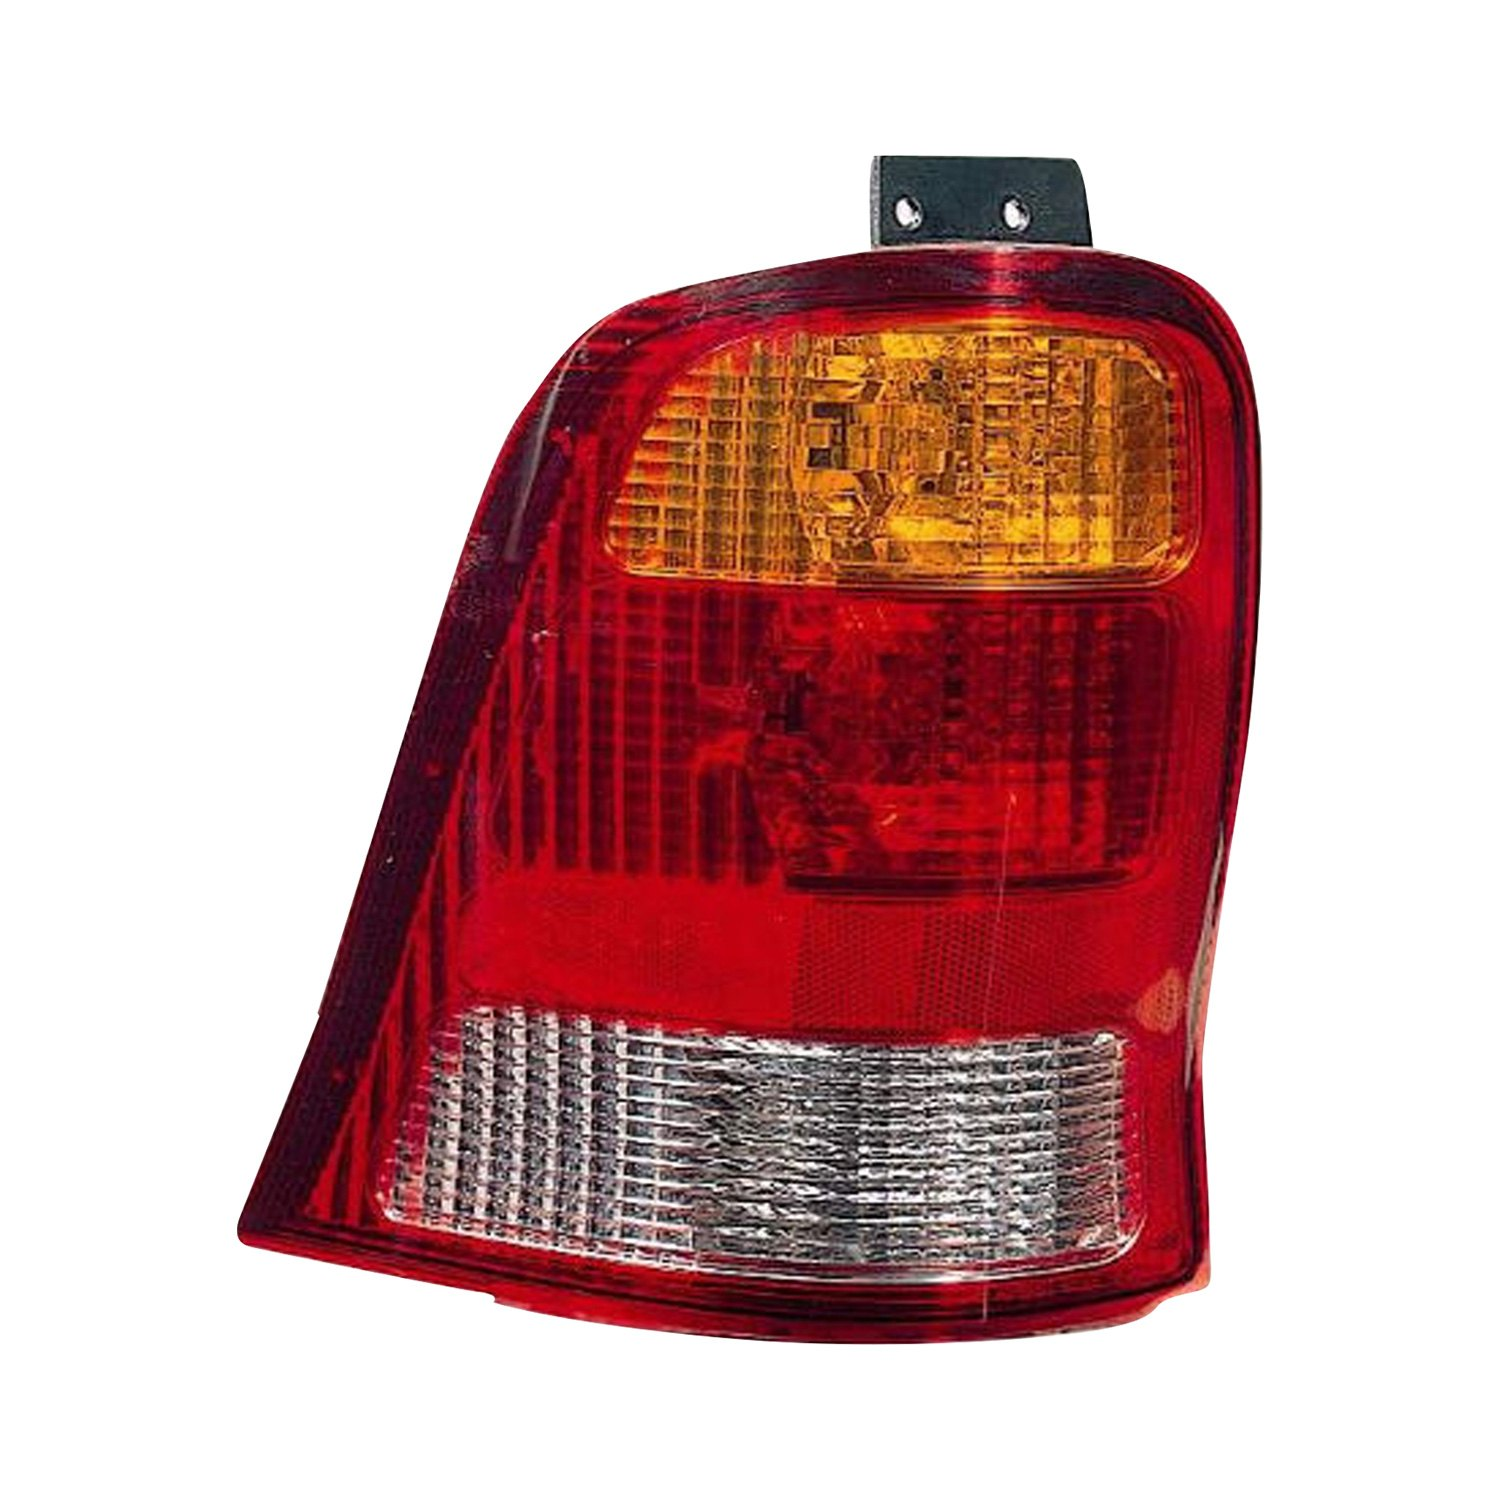 Tail Light Lens Replacement : Replace ford windstar  replacement tail light